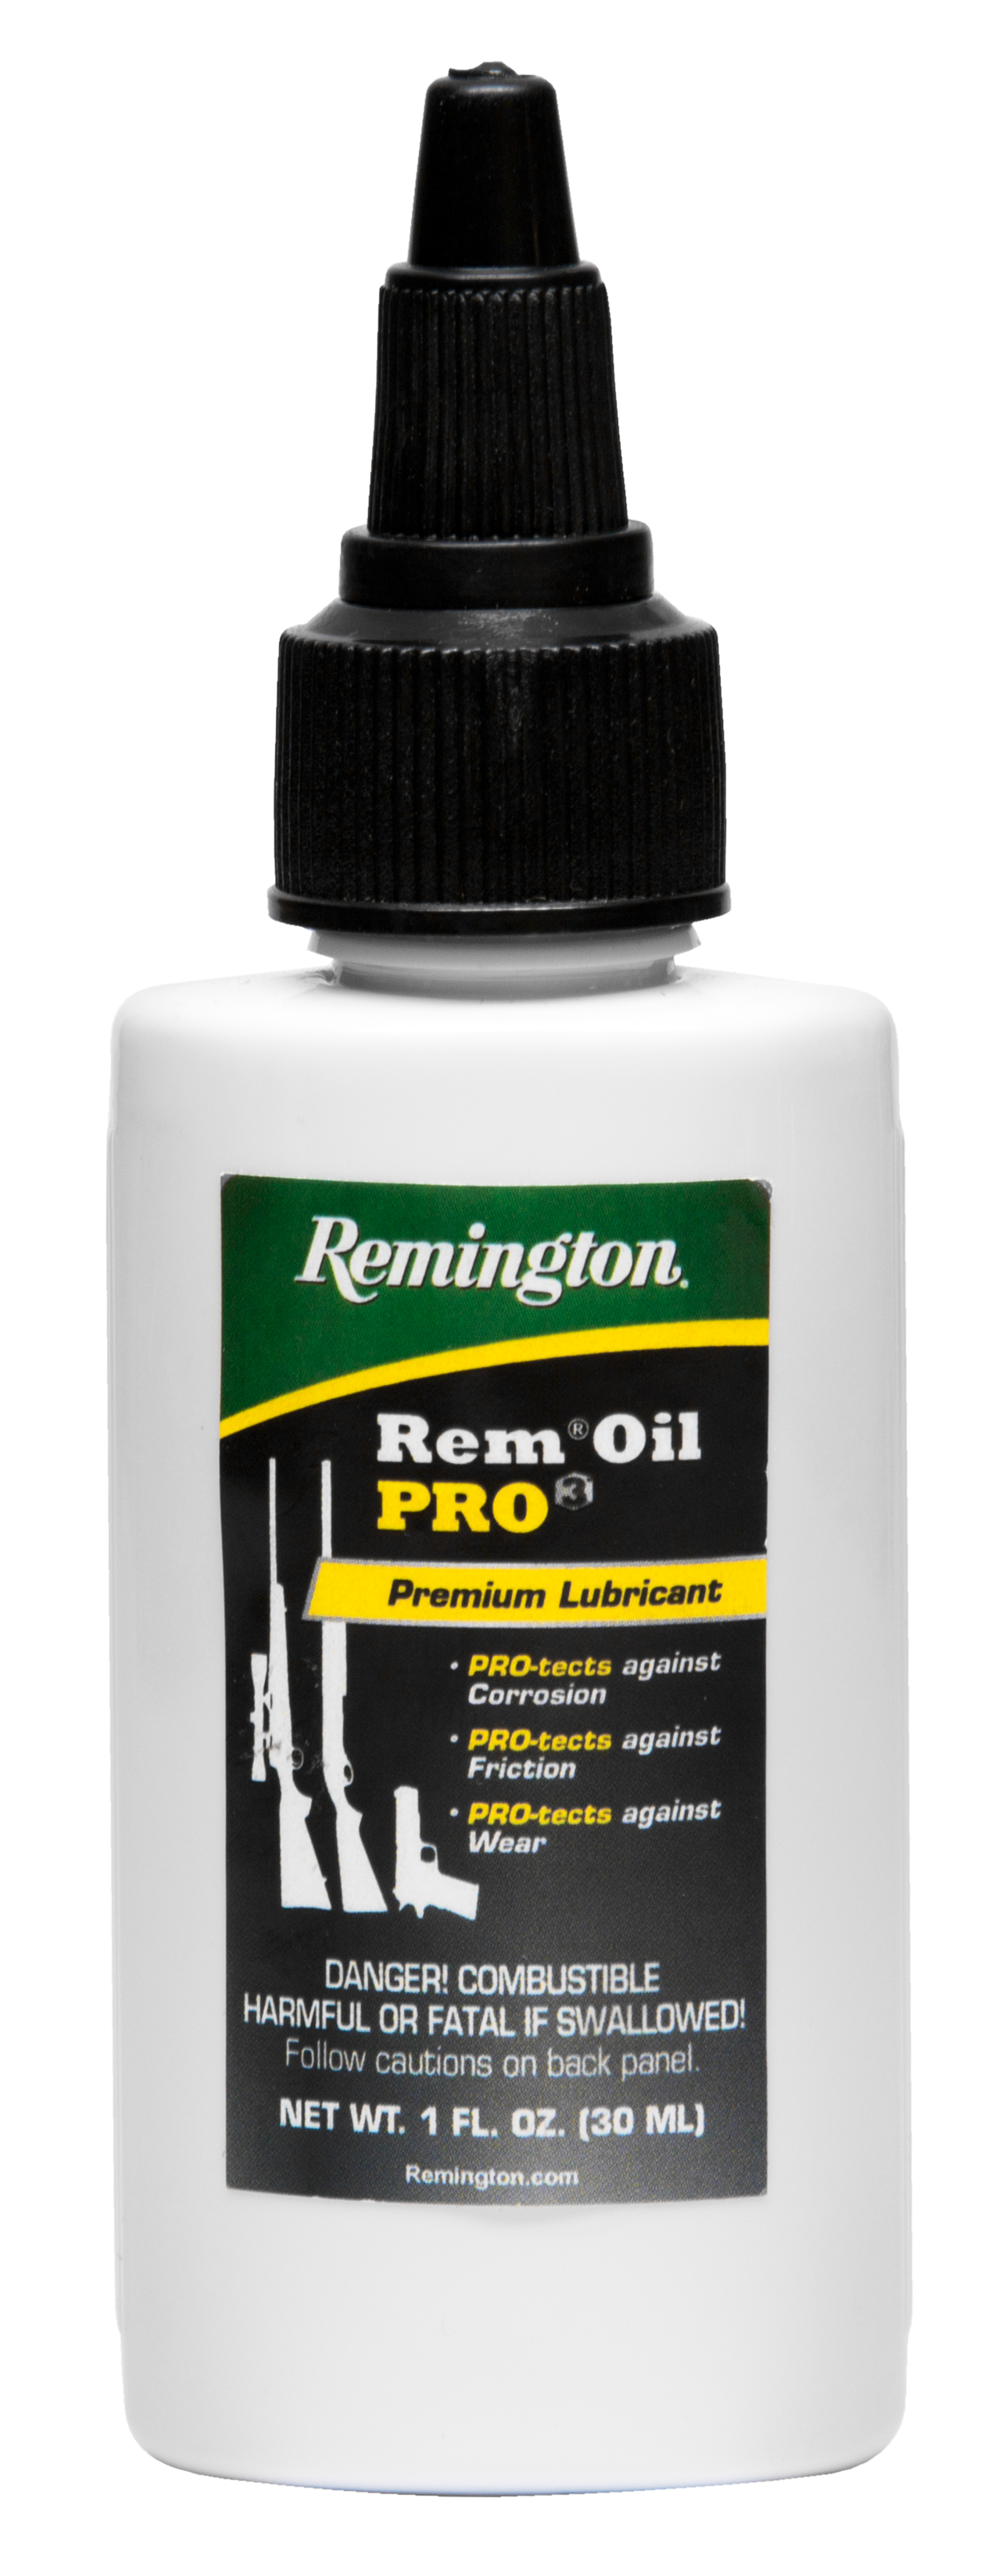 Remington Accessories 18915 Rem Oil Pro 3 Lubricant/Protectant 1 OZ